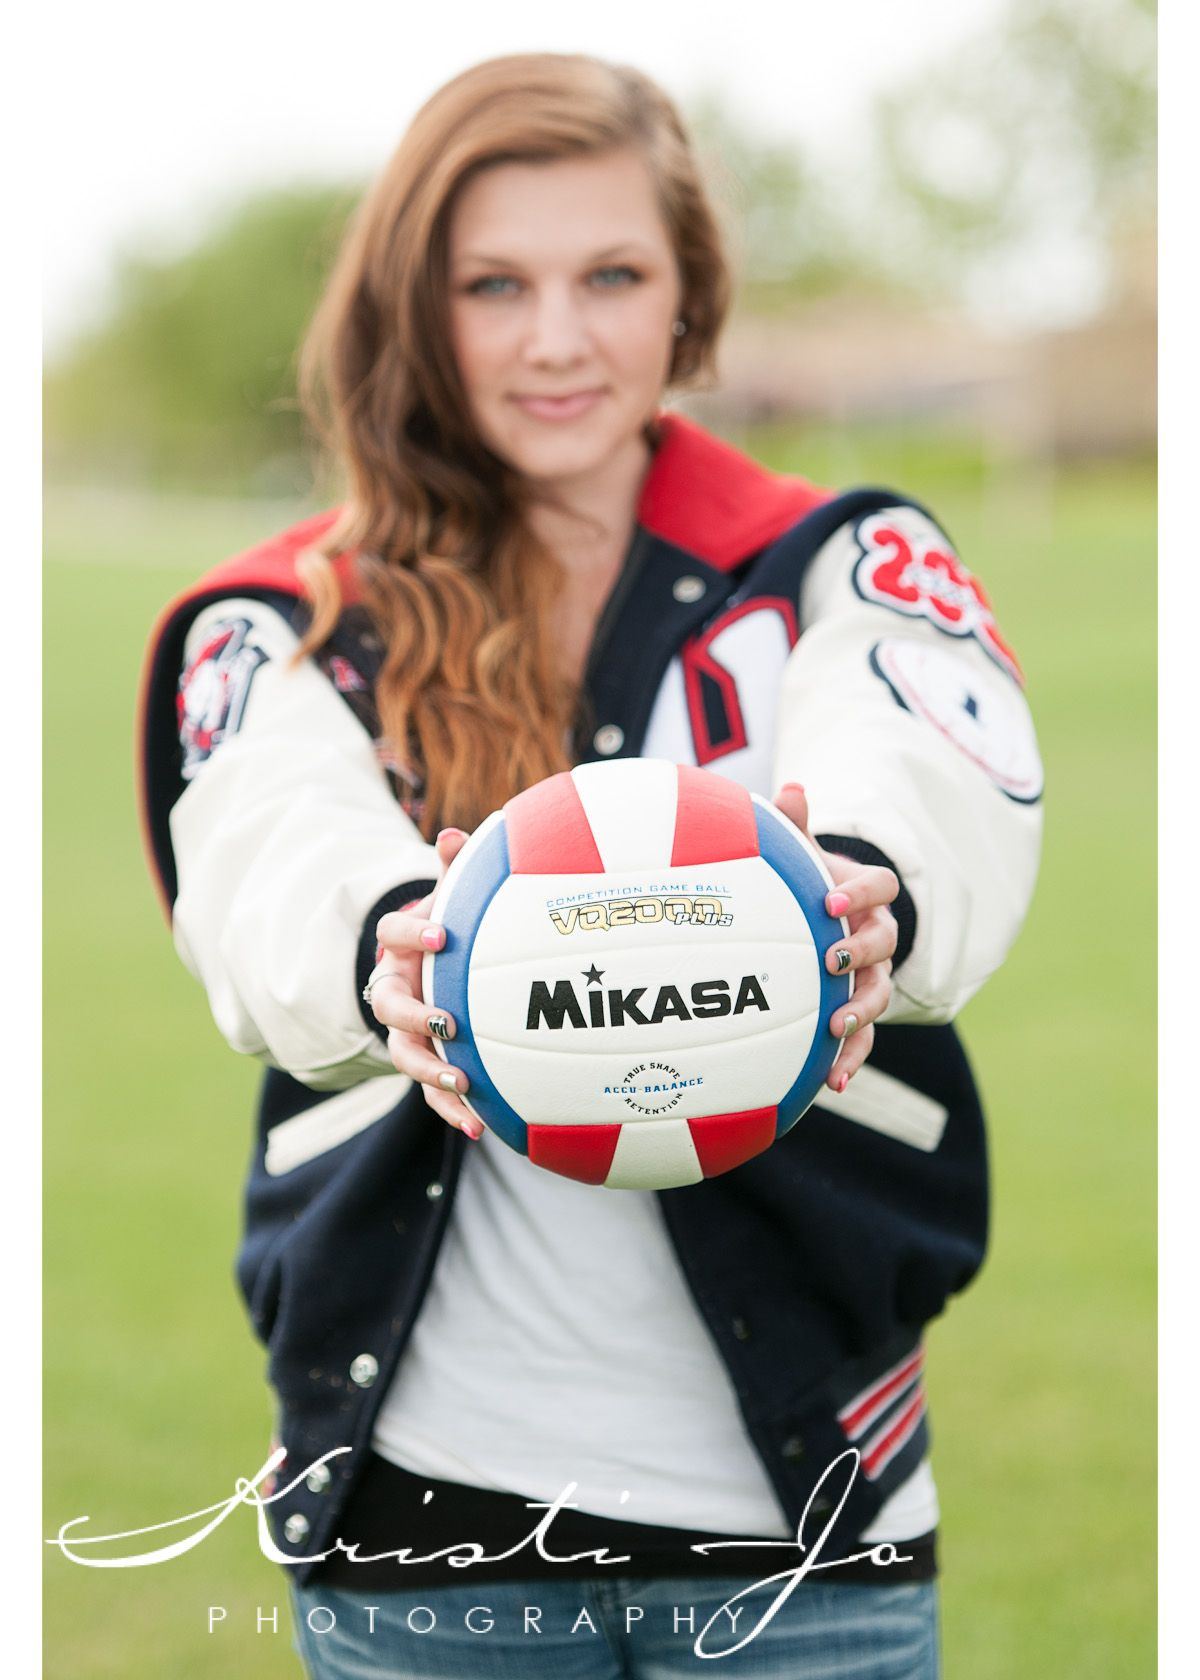 High School Senior Volleyball Player Volleyball Senior